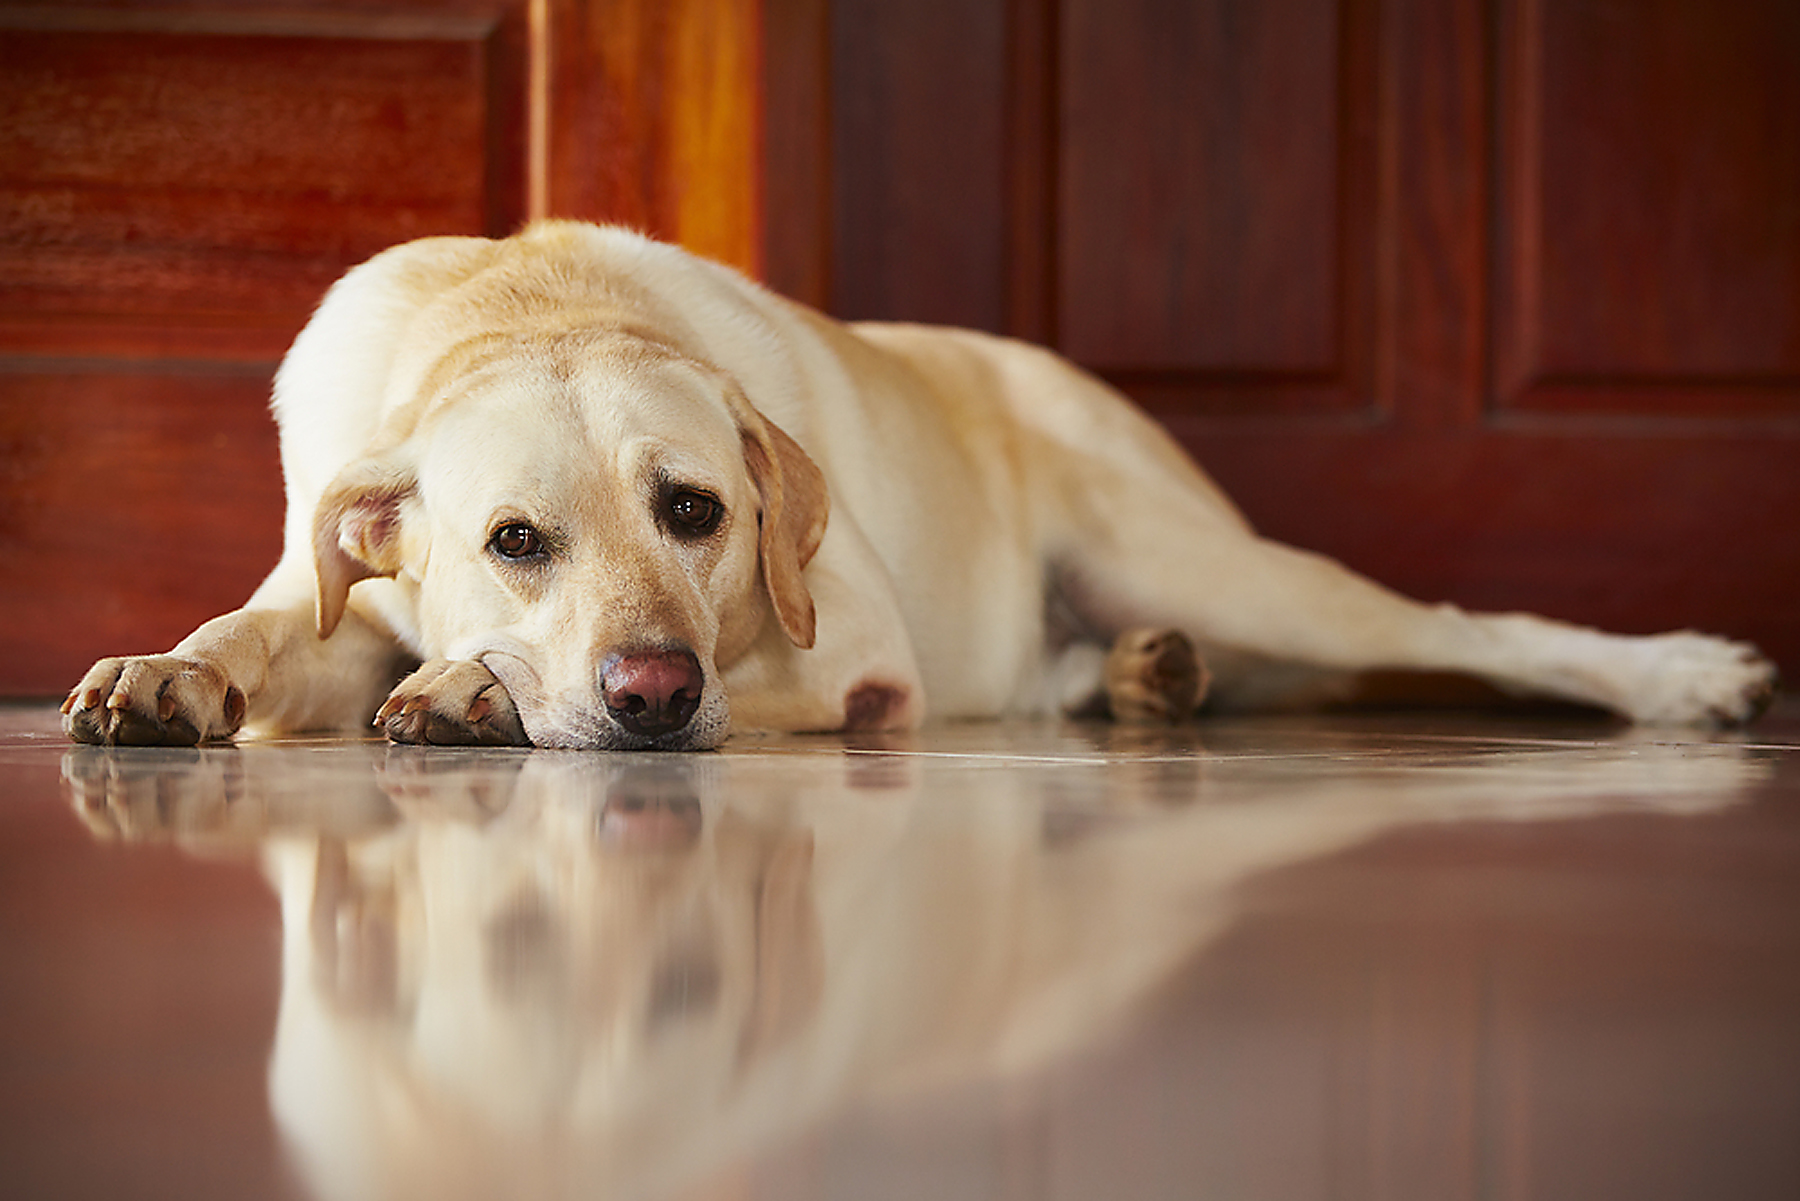 Dogs can do a lot of damage to any style of flooring, like scratches and urine stains, so flooring choices should reflect ease in cleaning and repair and the health of your family. (Submitted photo)